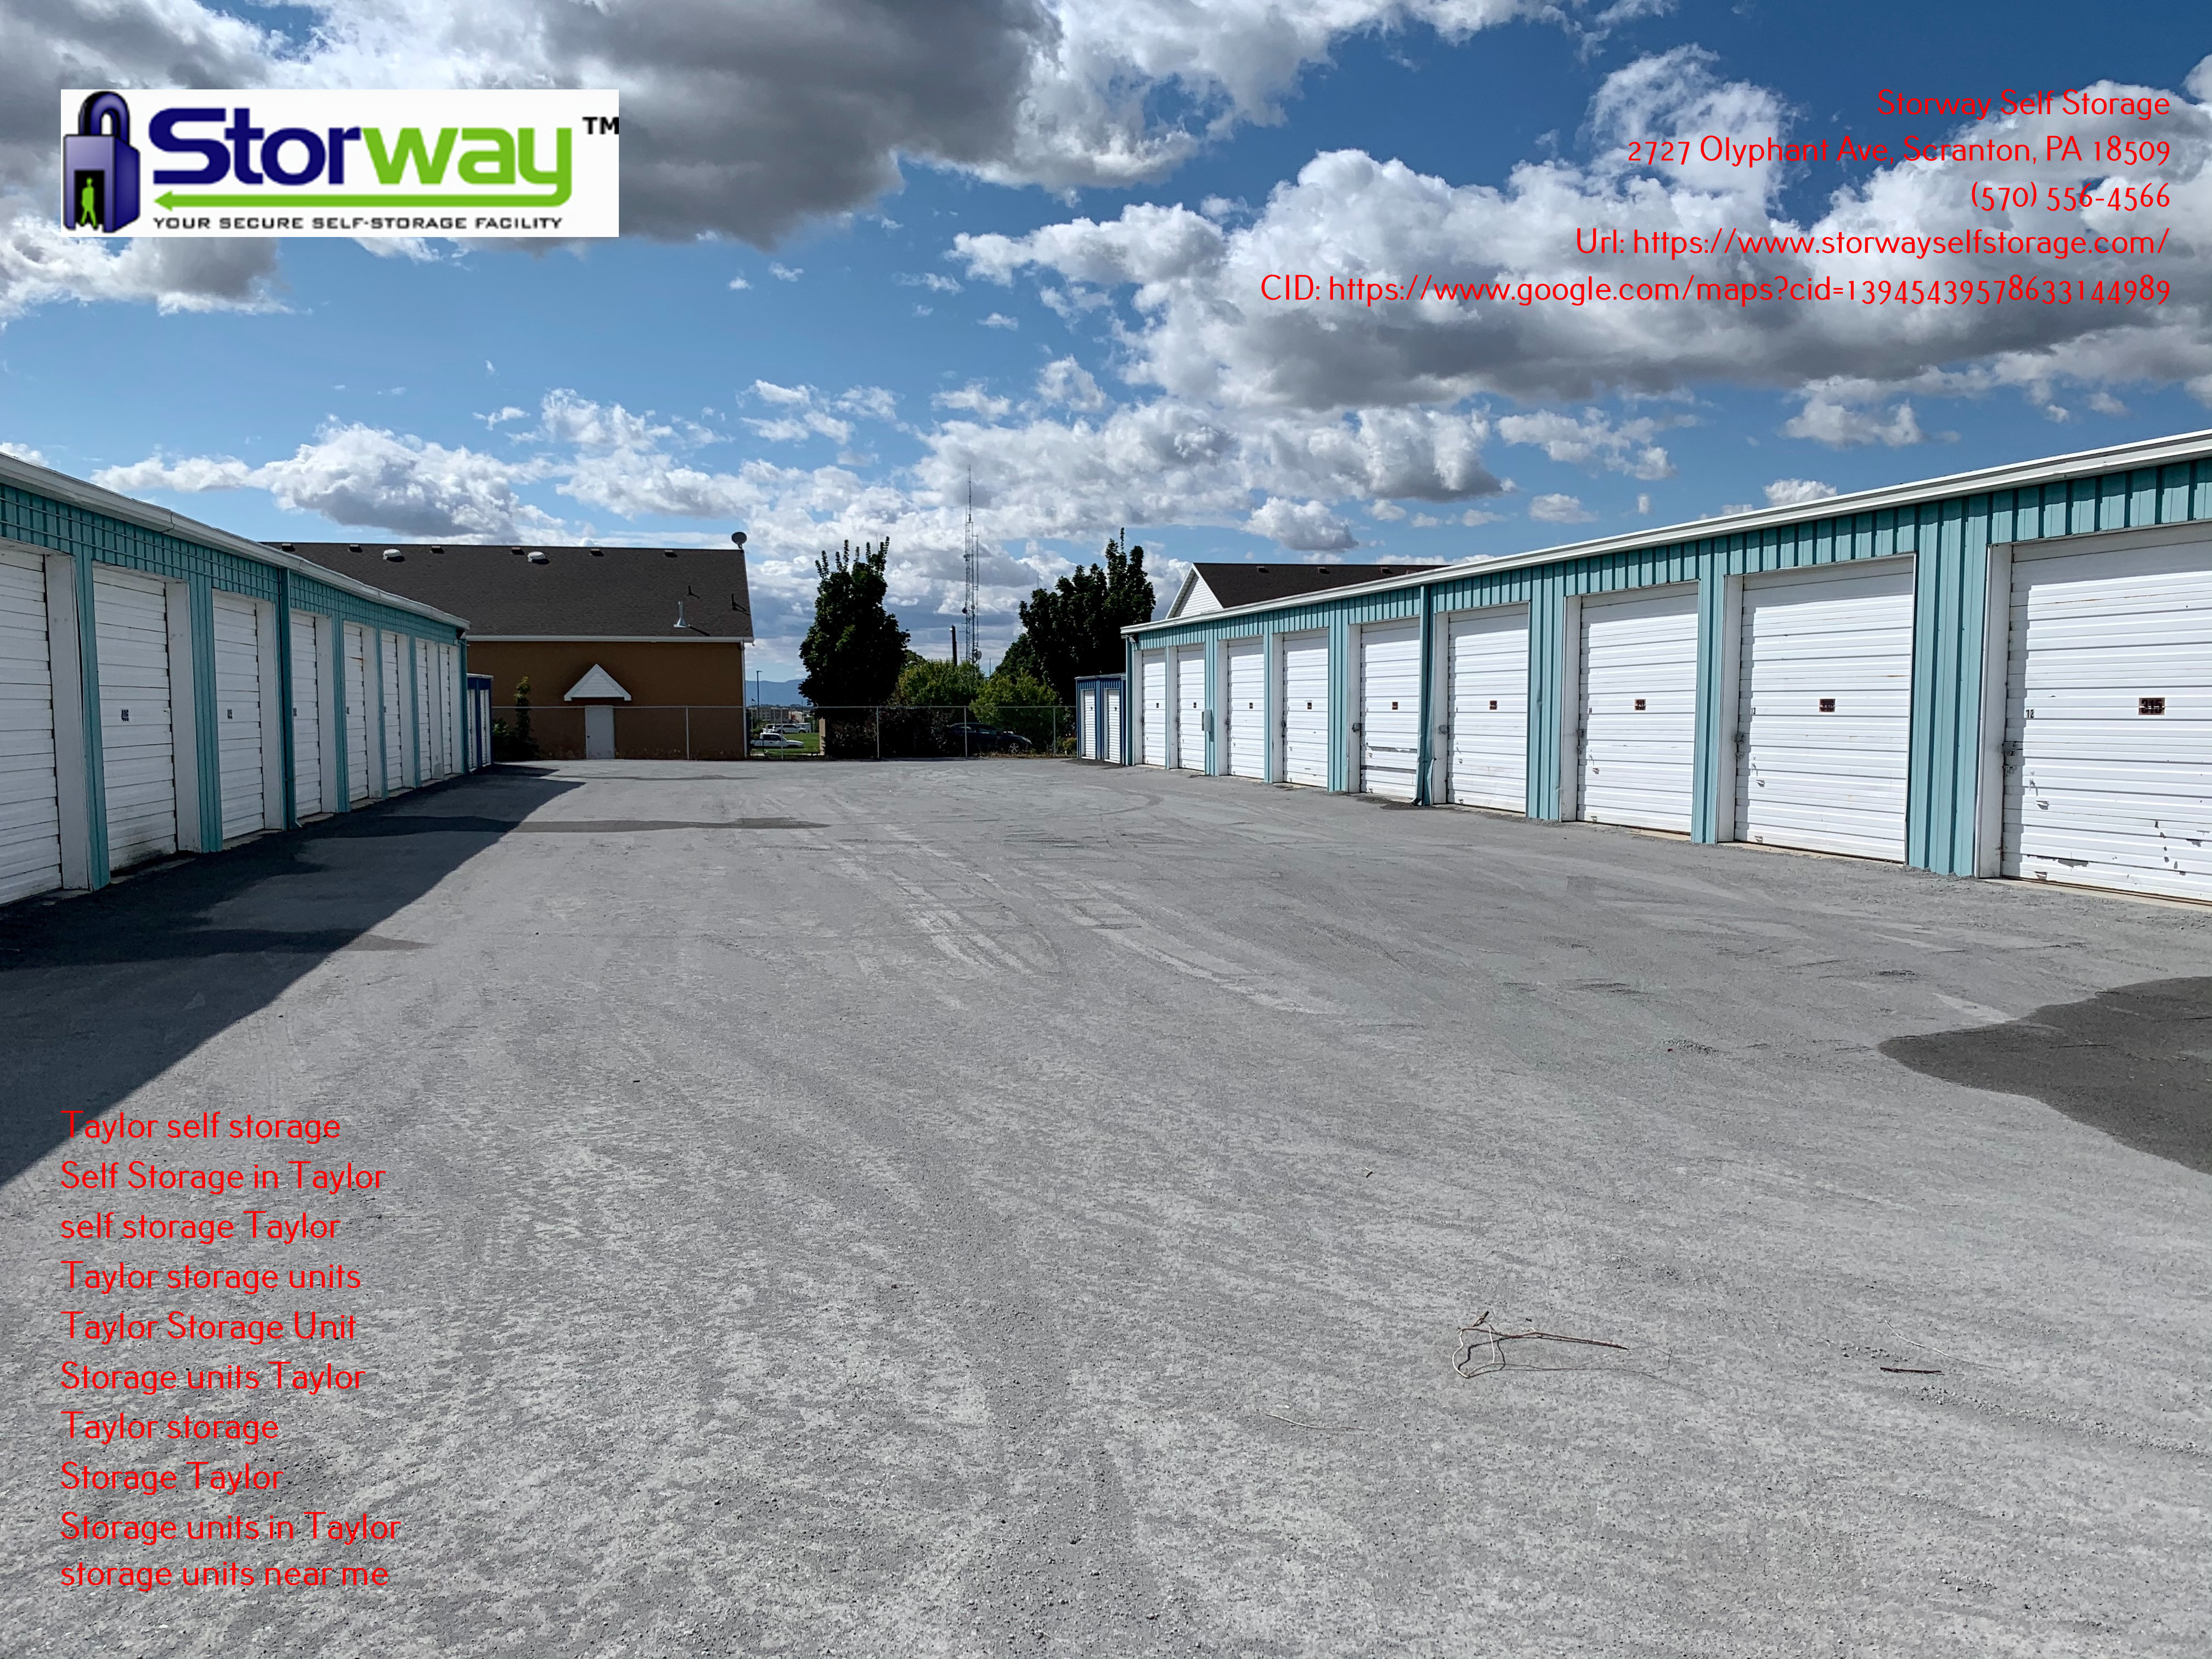 The Sizes of Storage Units in Taylor, Pennsylvania